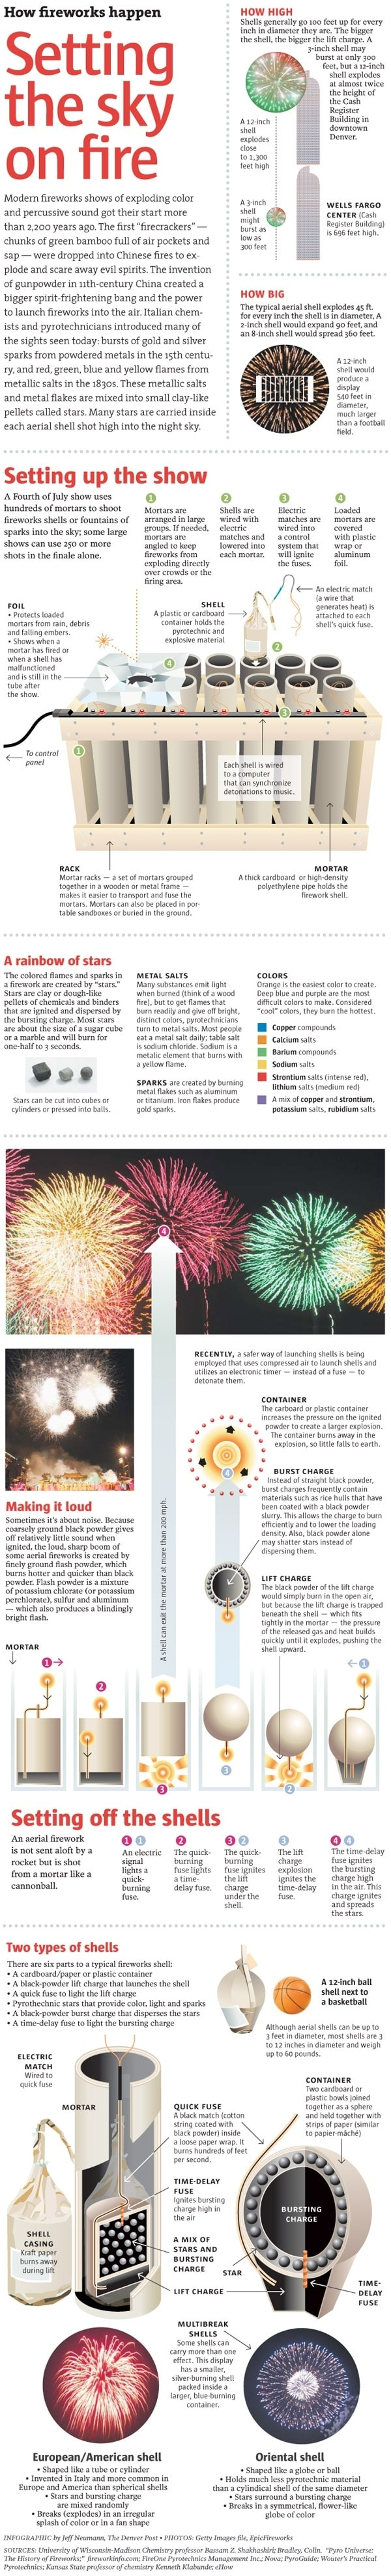 How Fireworks Happen – A Great Infographic!